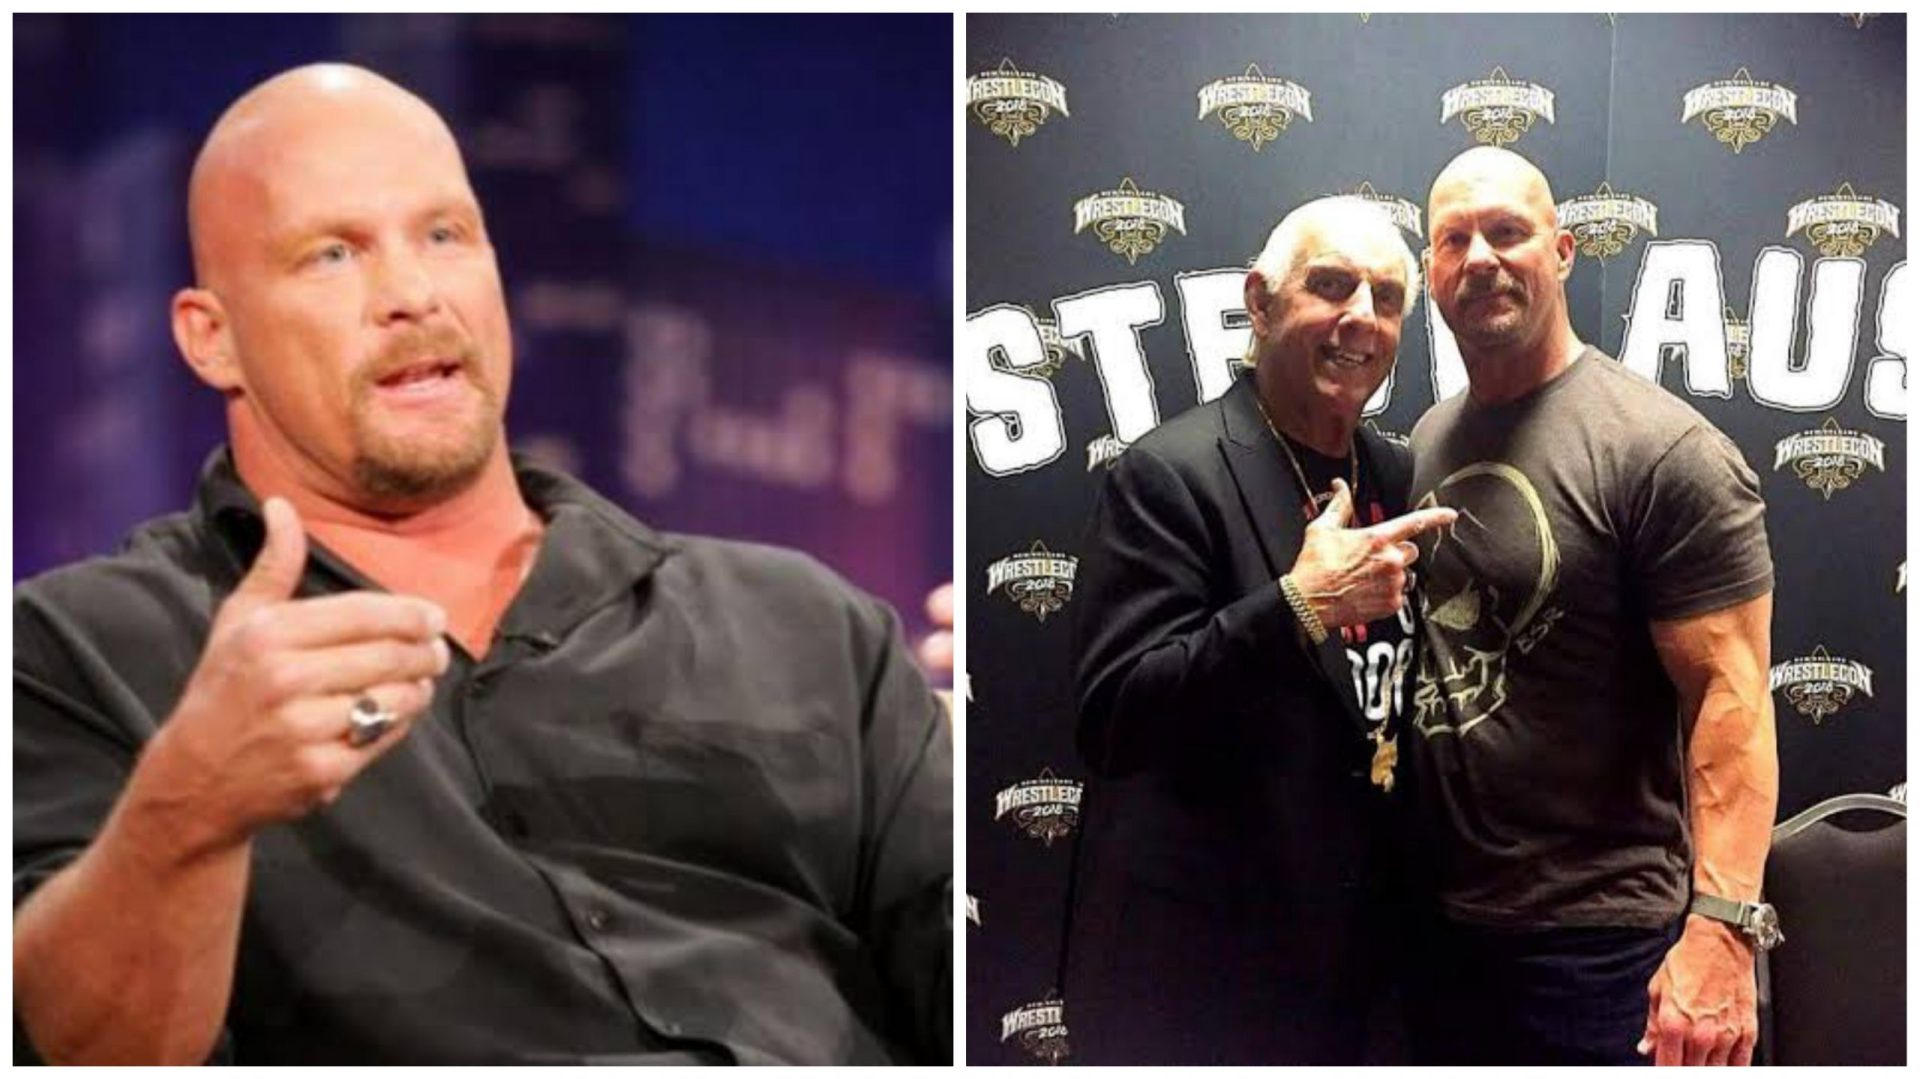 Ric Flair is the greatest of all time, says Steve Austin - THE SPORTS ROOM